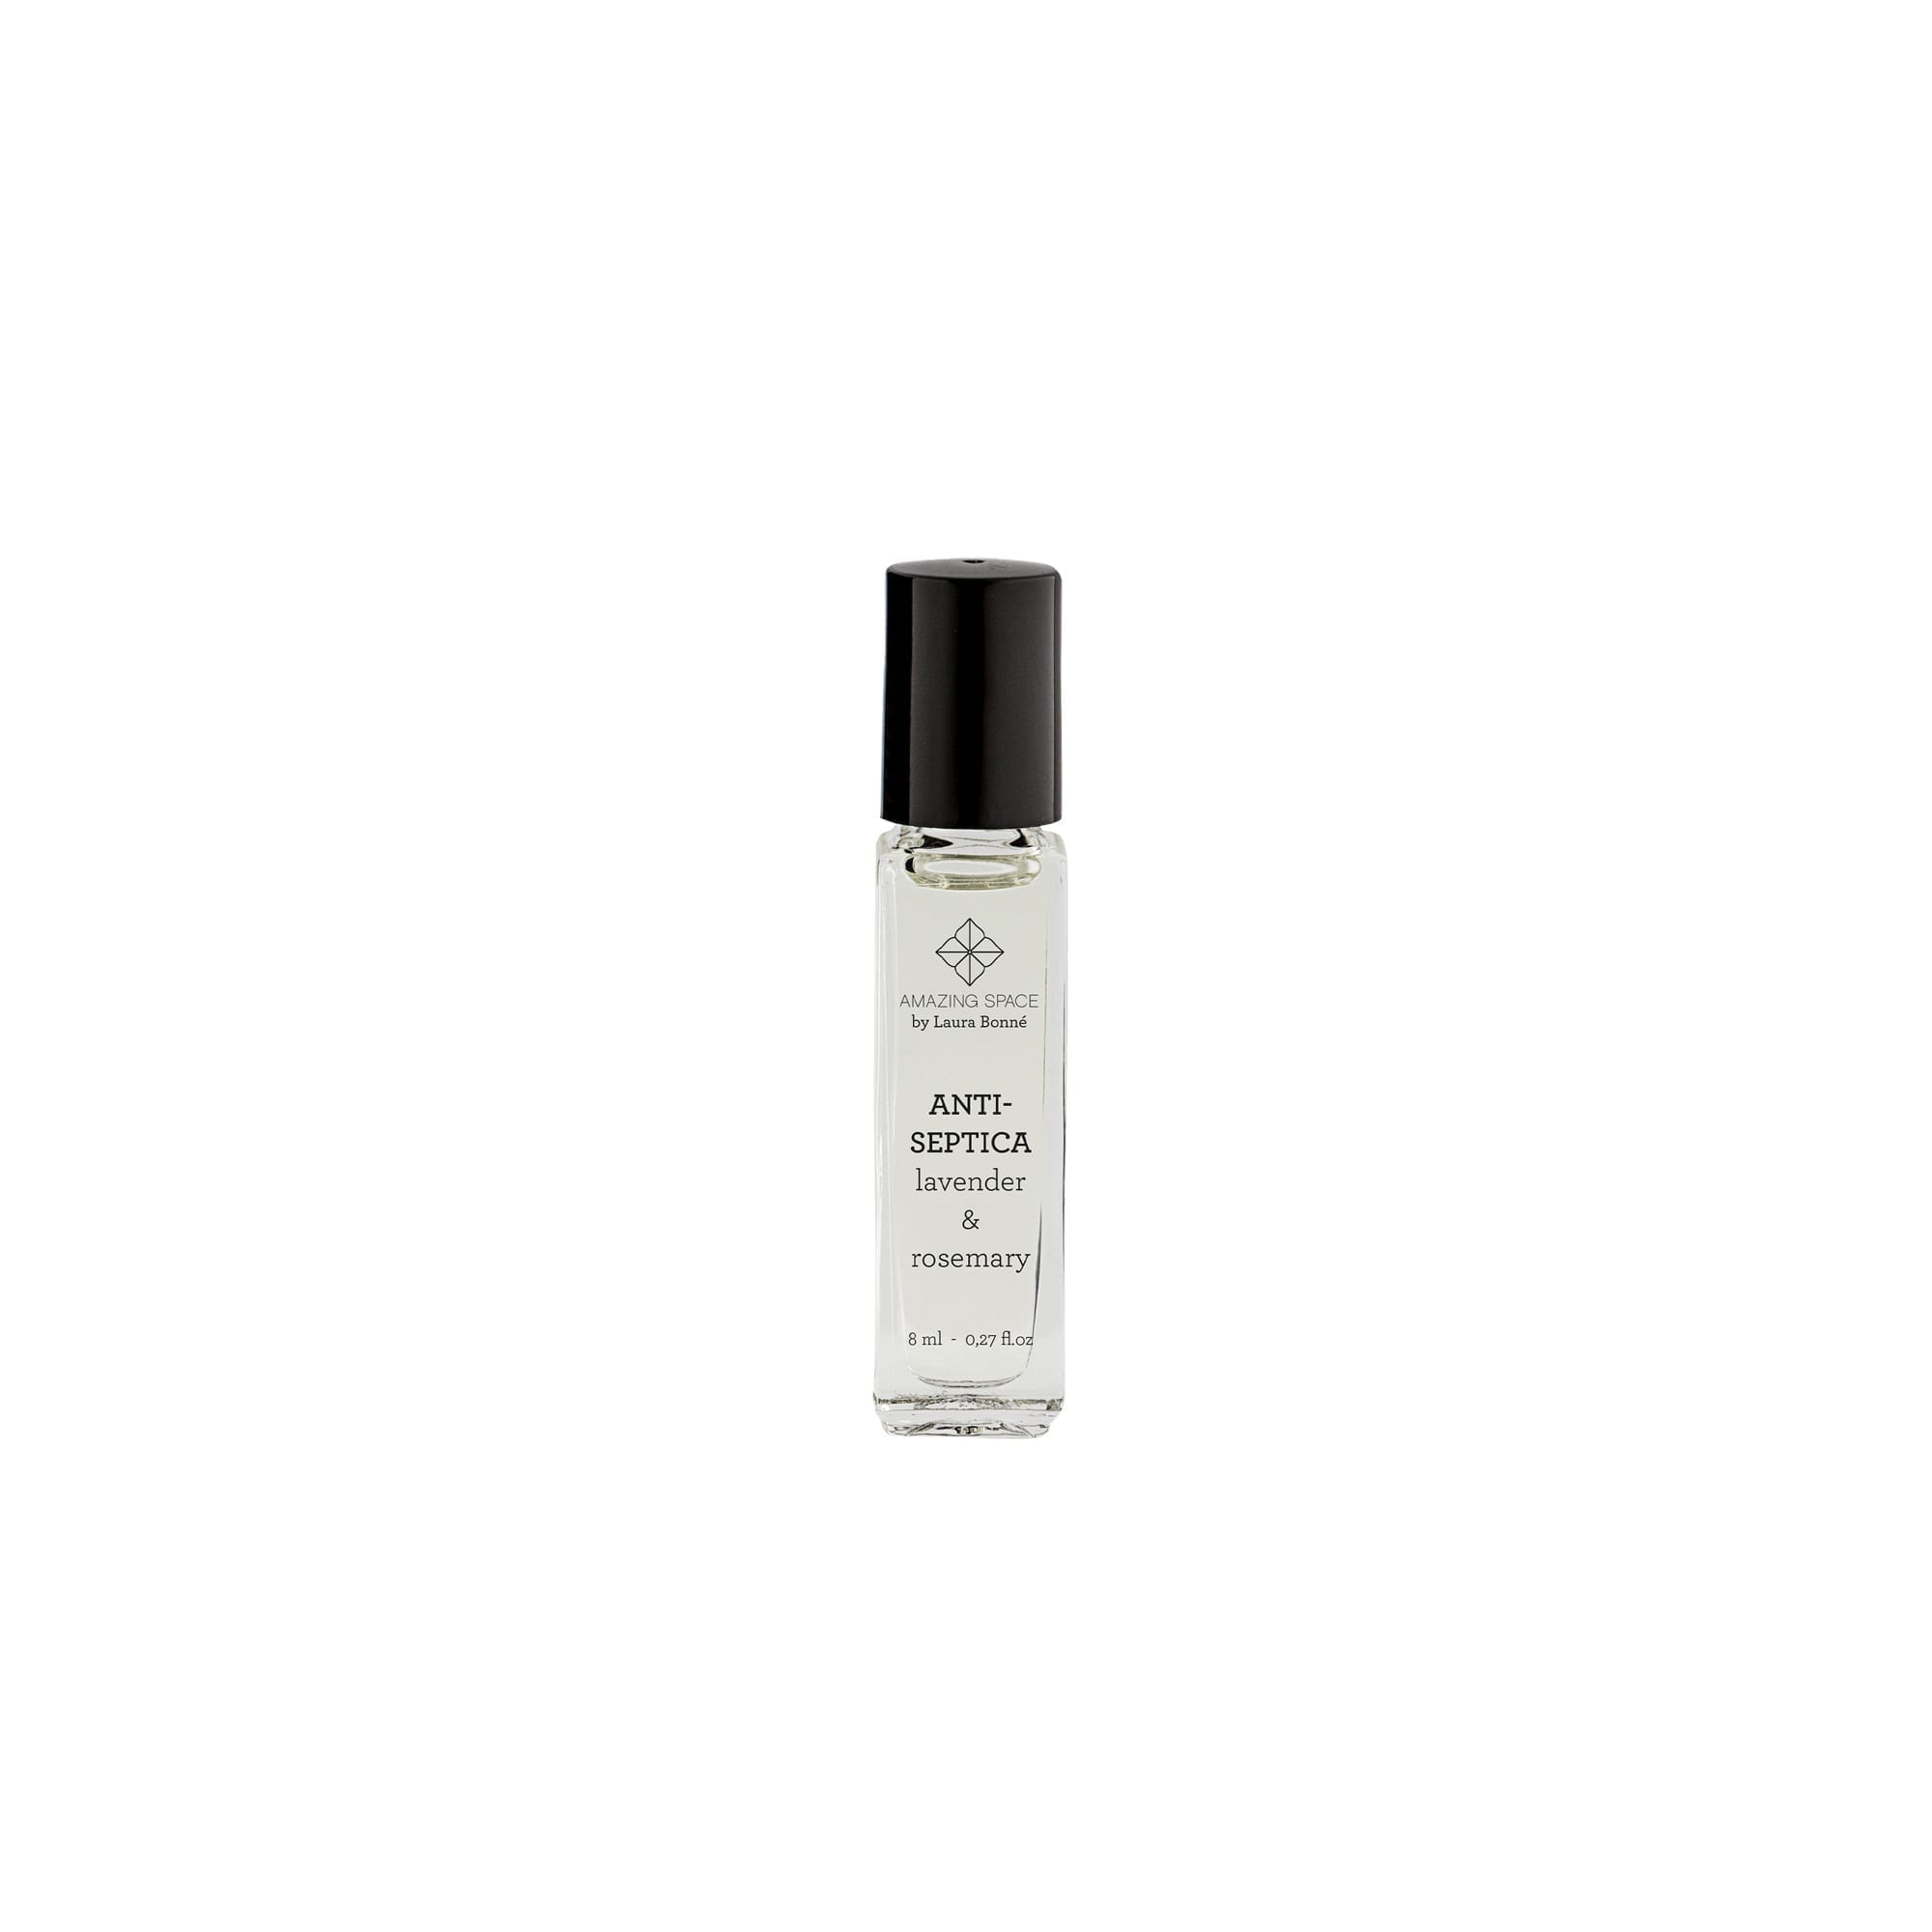 Antiseptica - Lavender & Rosemary Oil - Amazing Space